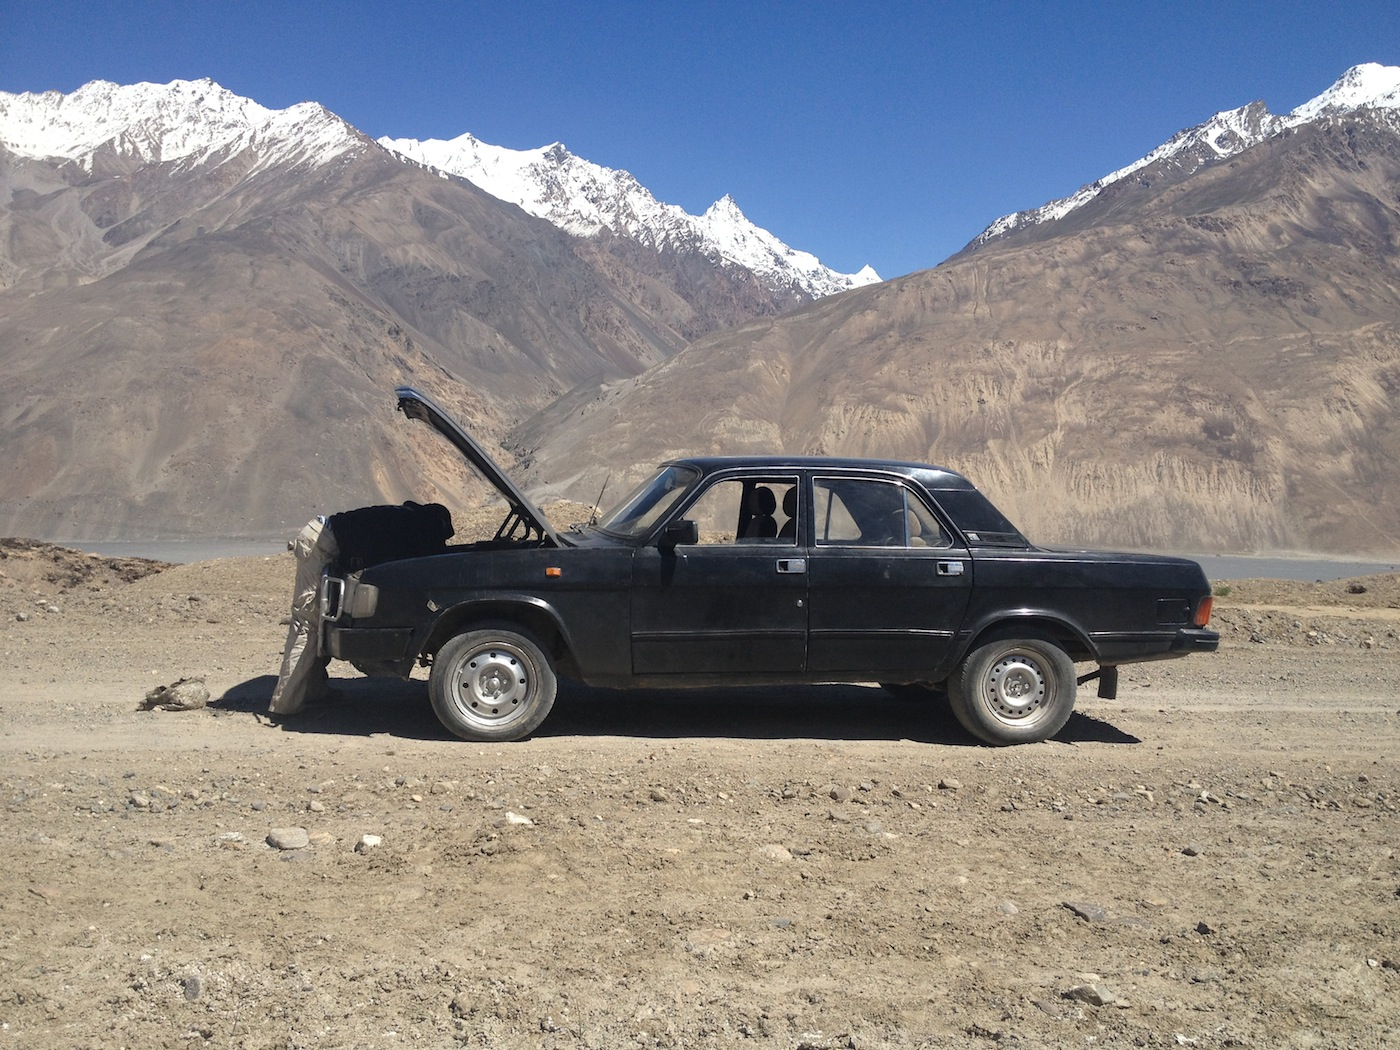 The local idiot who couldn't fix his own car (Tajikistan - Wakhan)